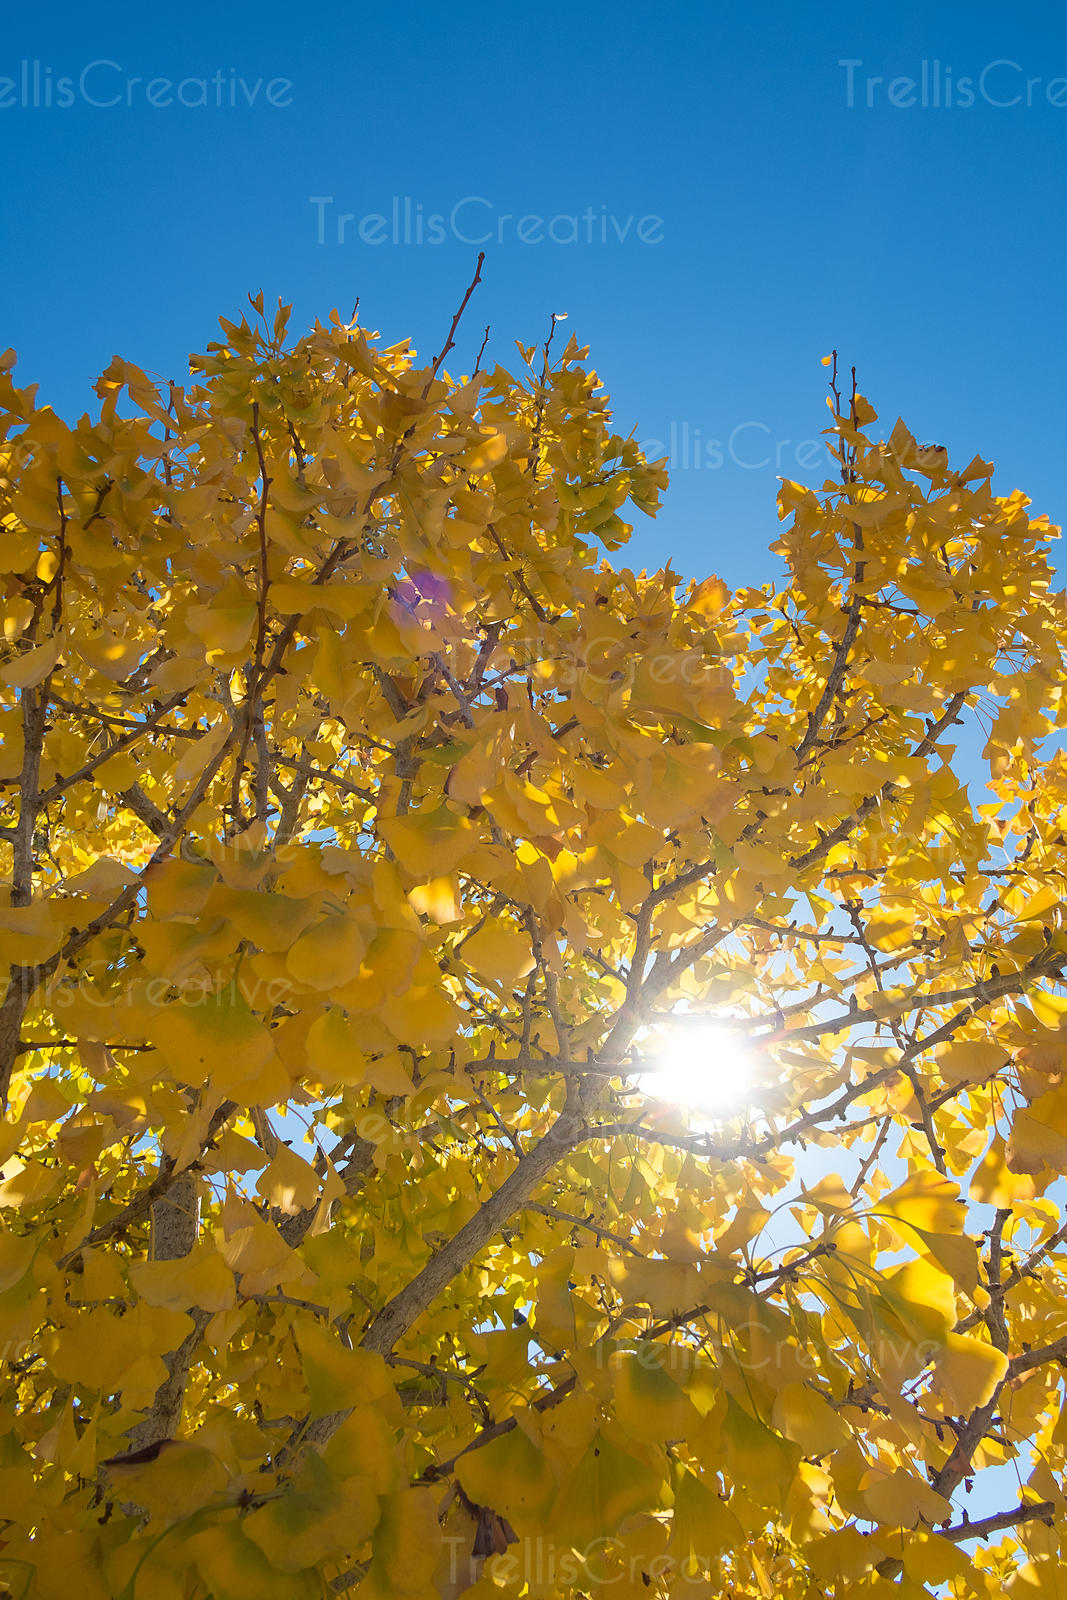 Vibrant yellow fall leaves on the ginko tree againt the blue sky